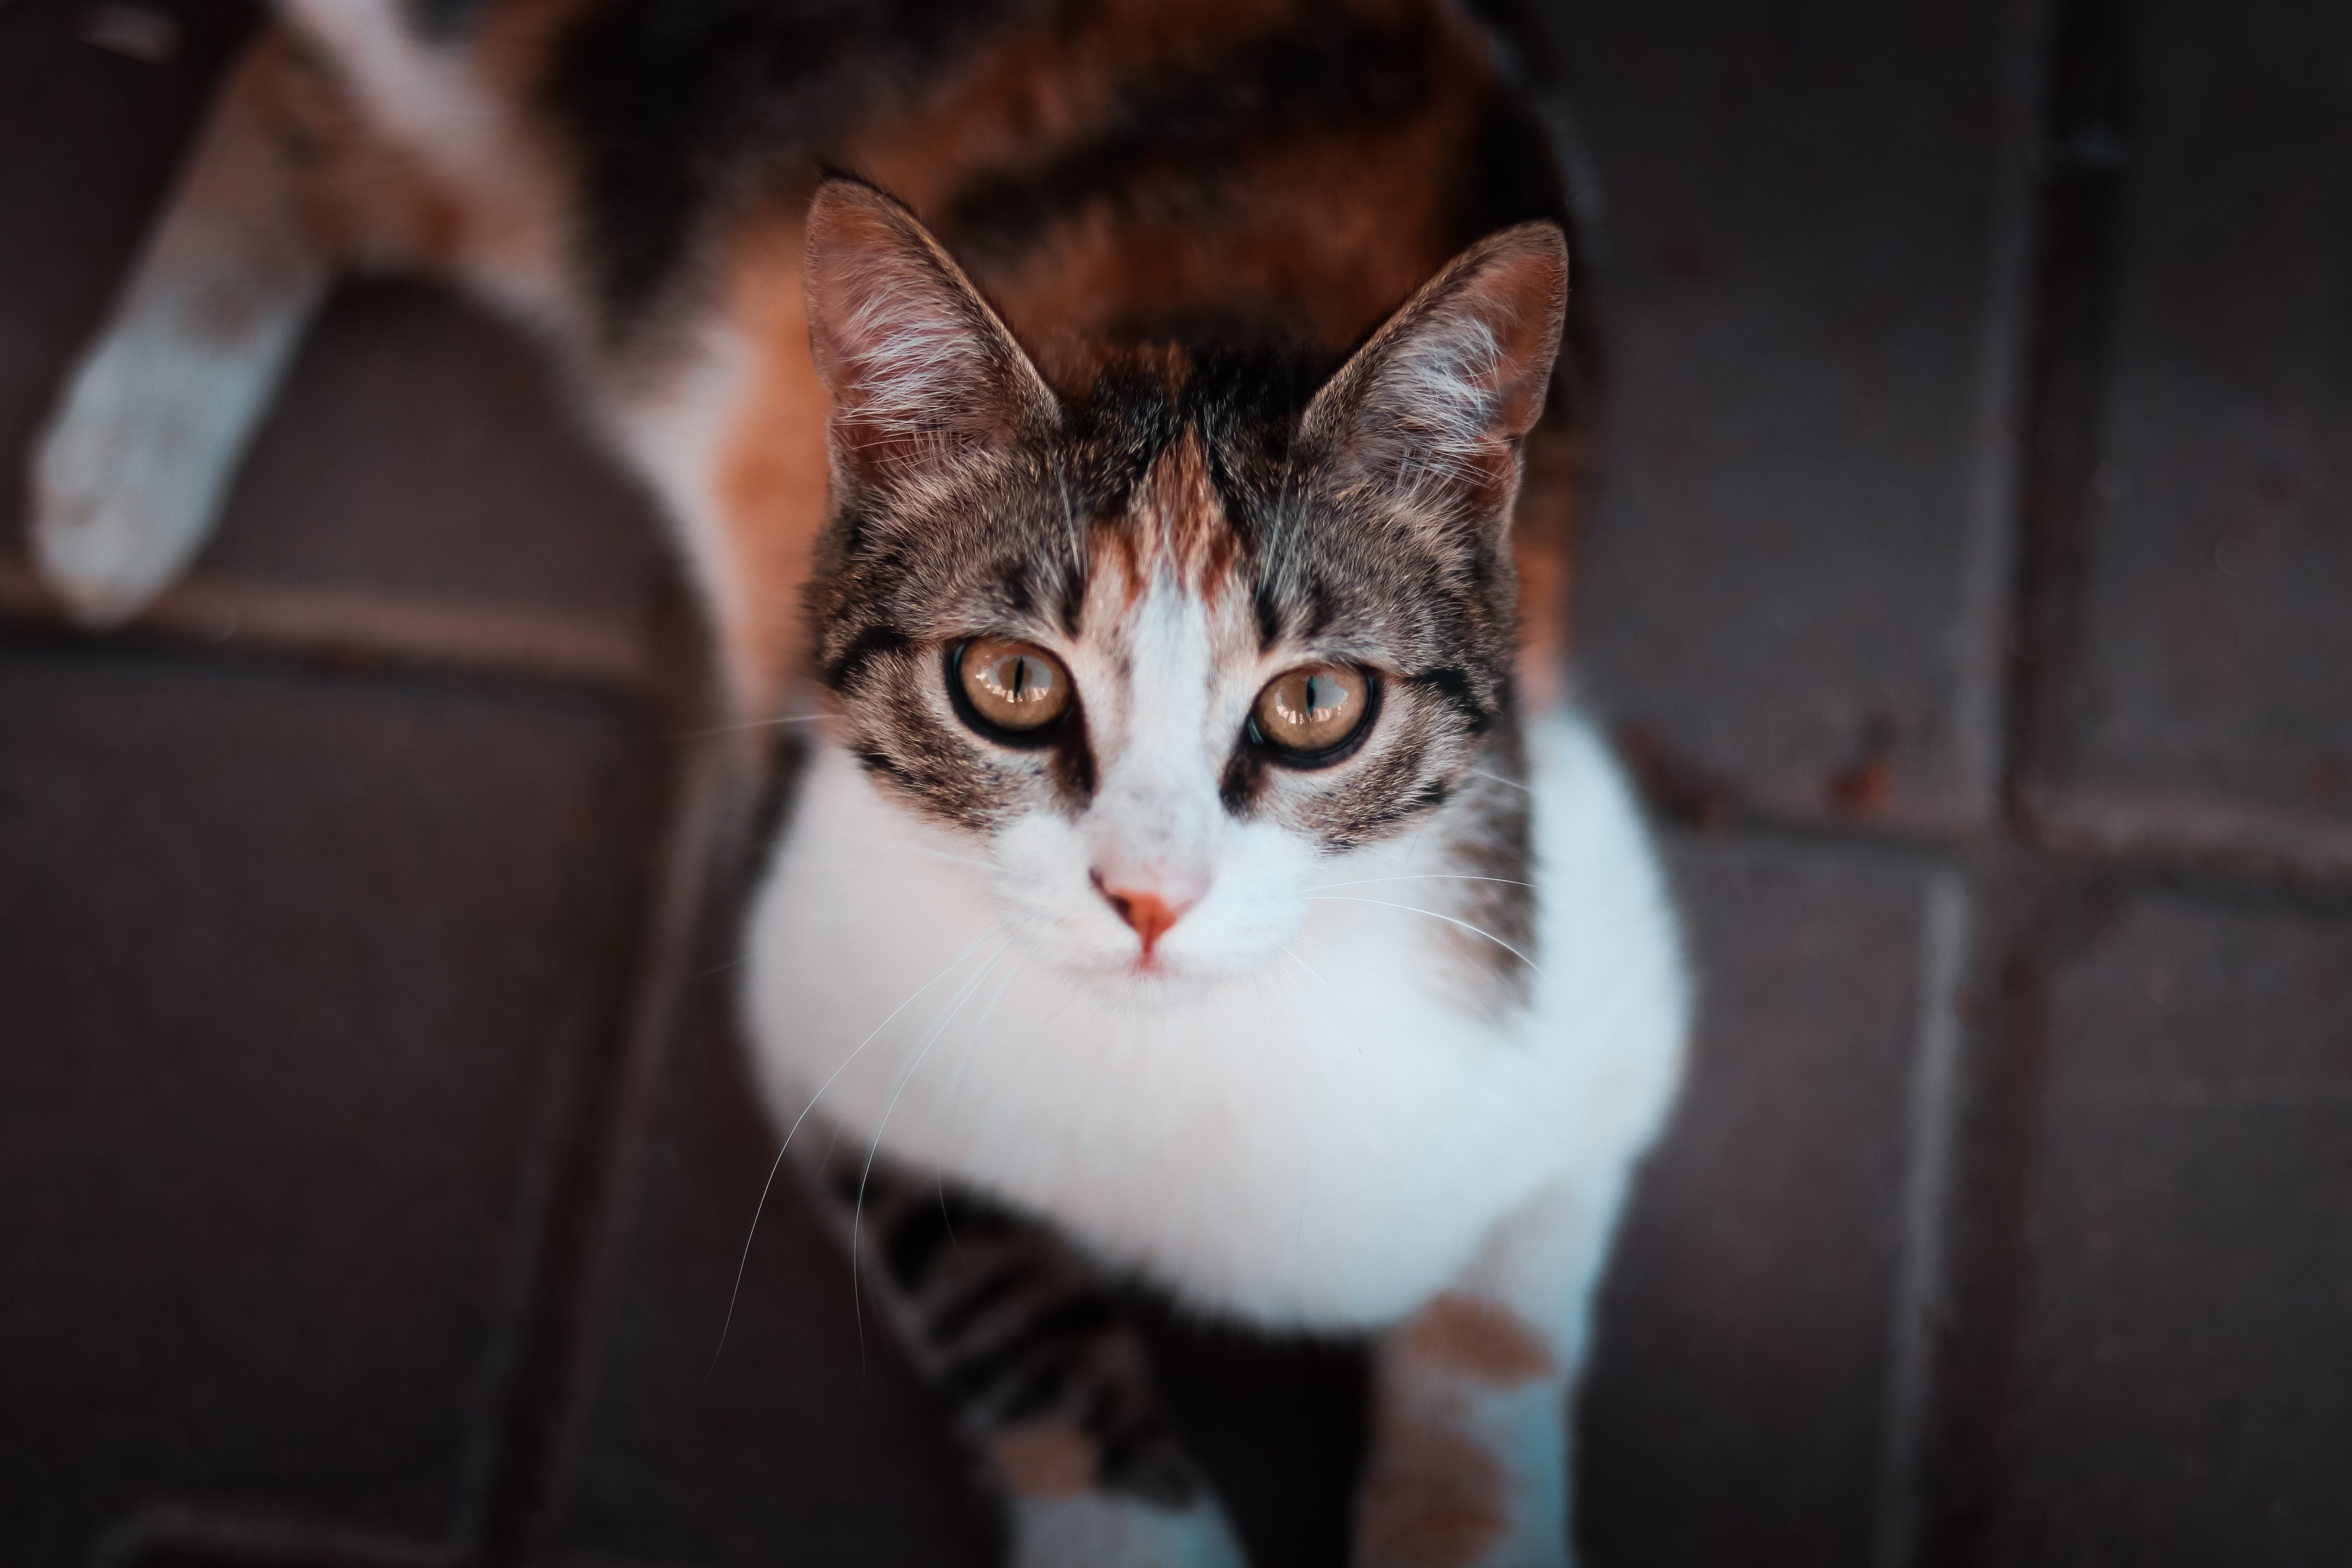 Selective Focus Photograph of Brown Tabby Cat